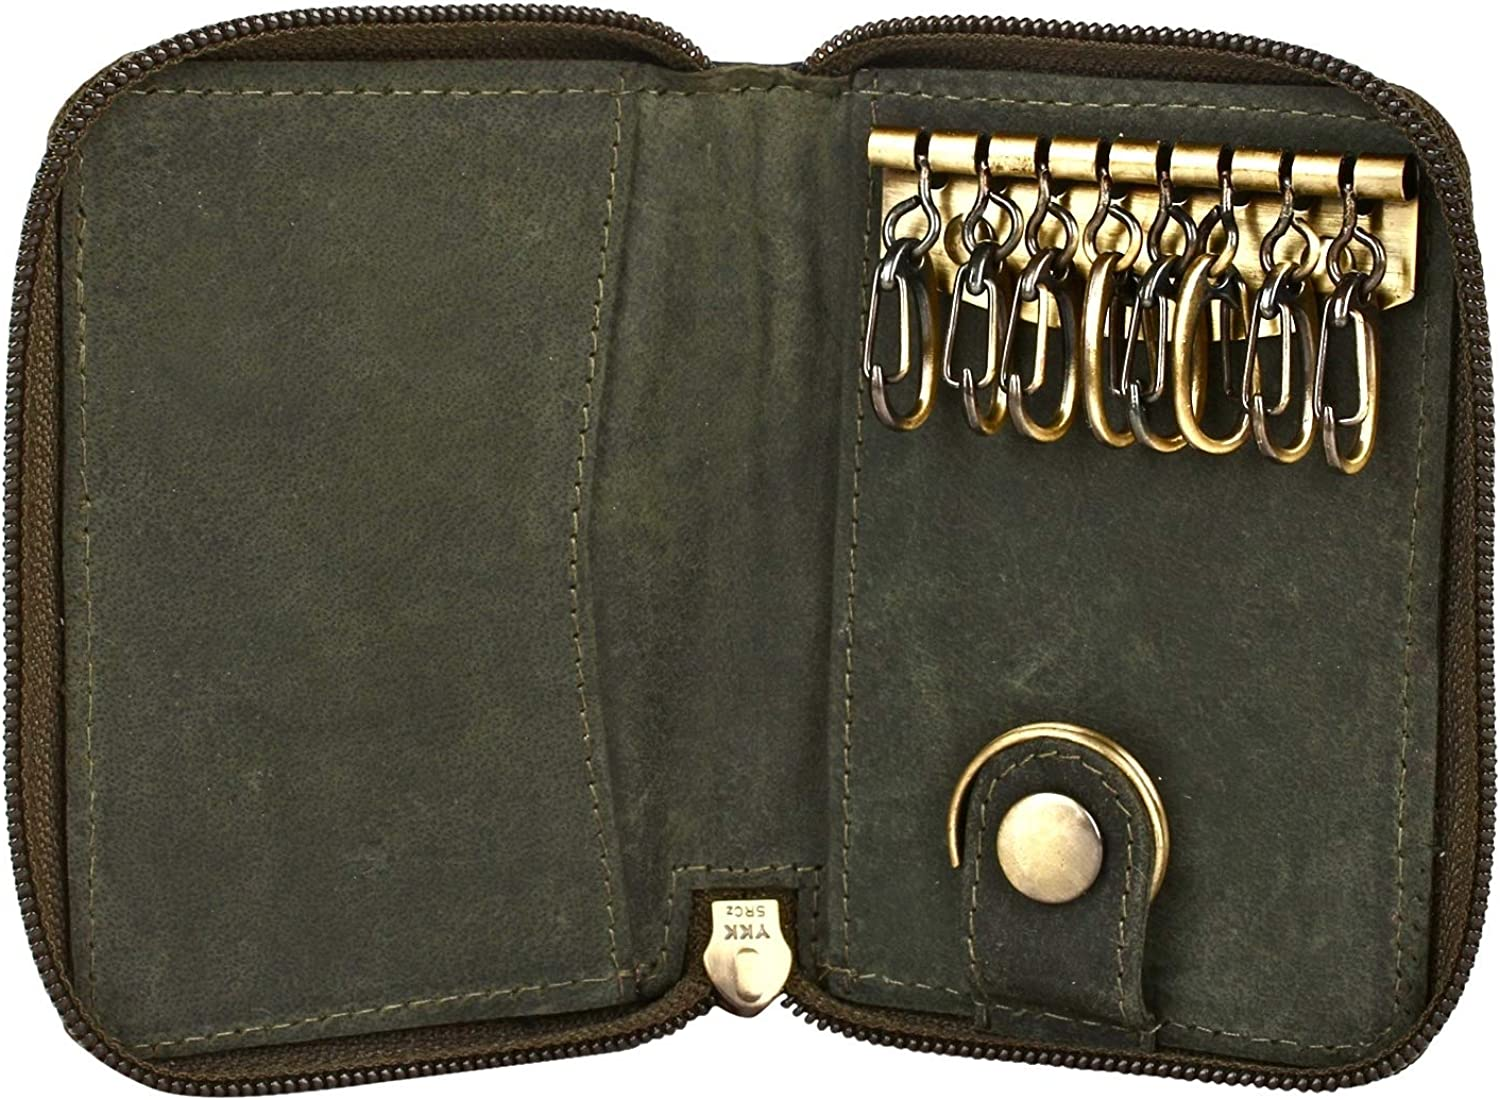 MEN/'S GENUINE LEATHER MENS KEY Chain Cash Coin Holder Case Wallet 7 Rings COLORS